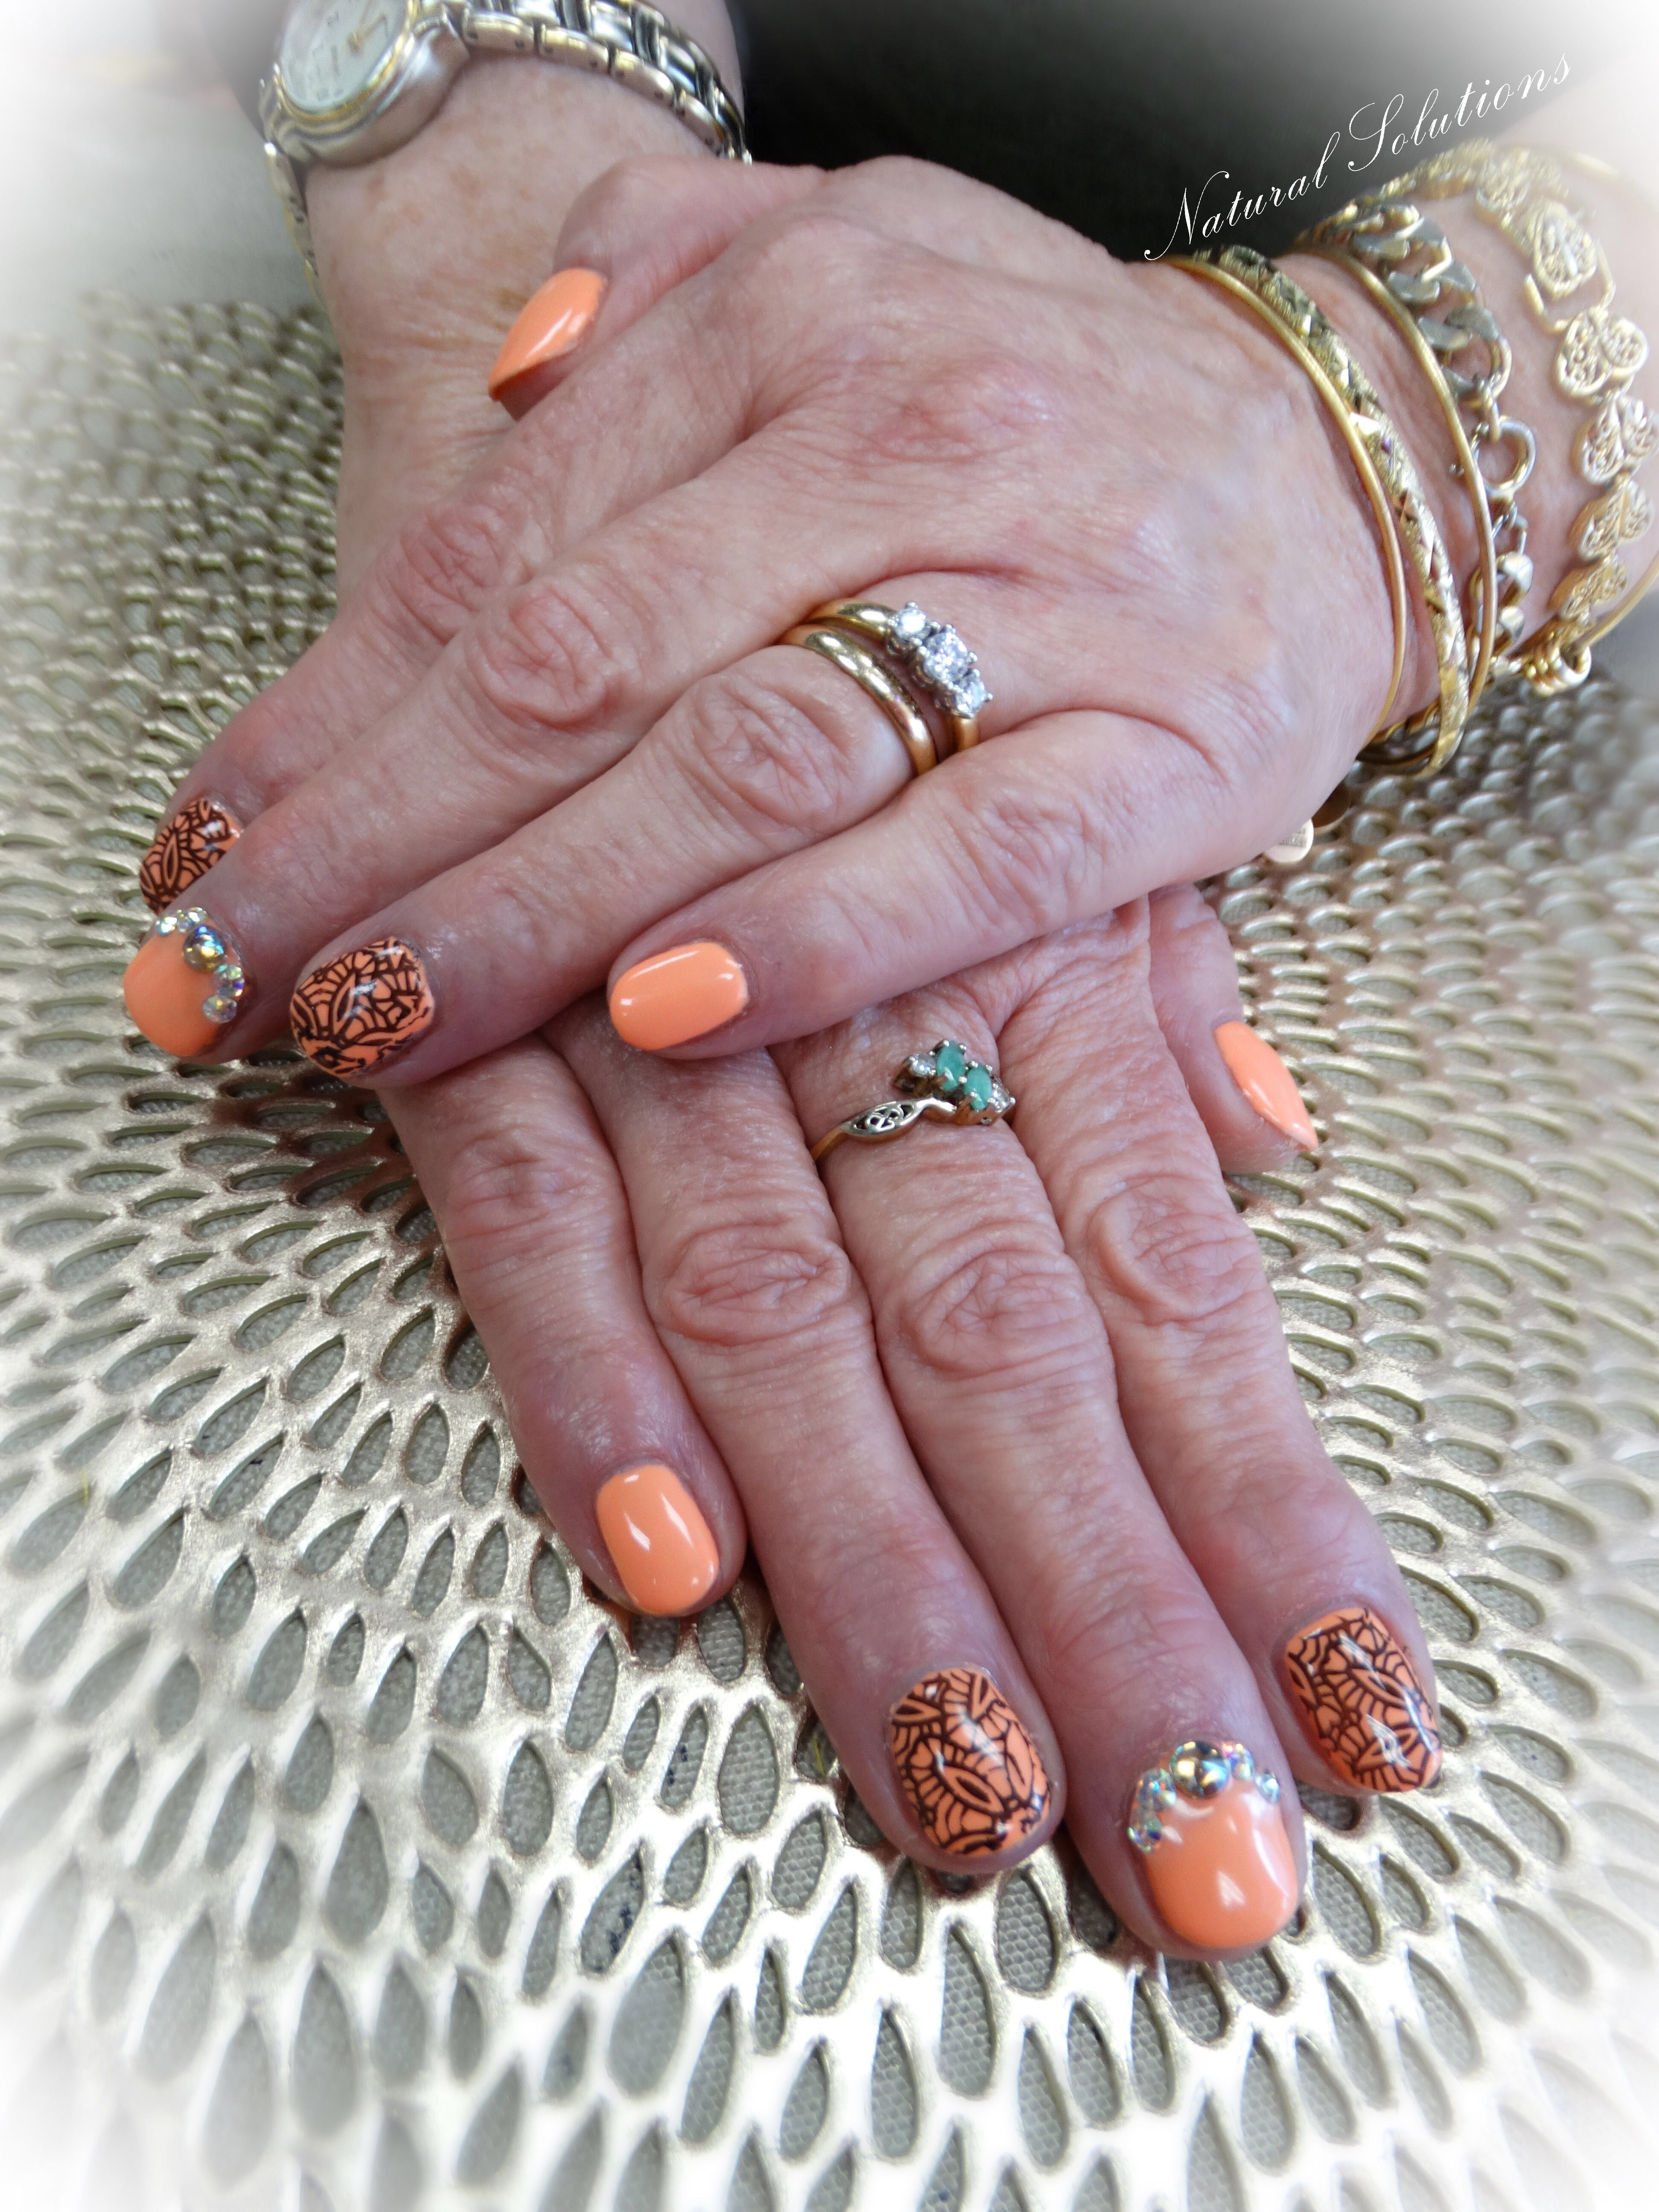 Pin by Mallie Sue on Nail Designs | Pinterest | Organic hair color ...